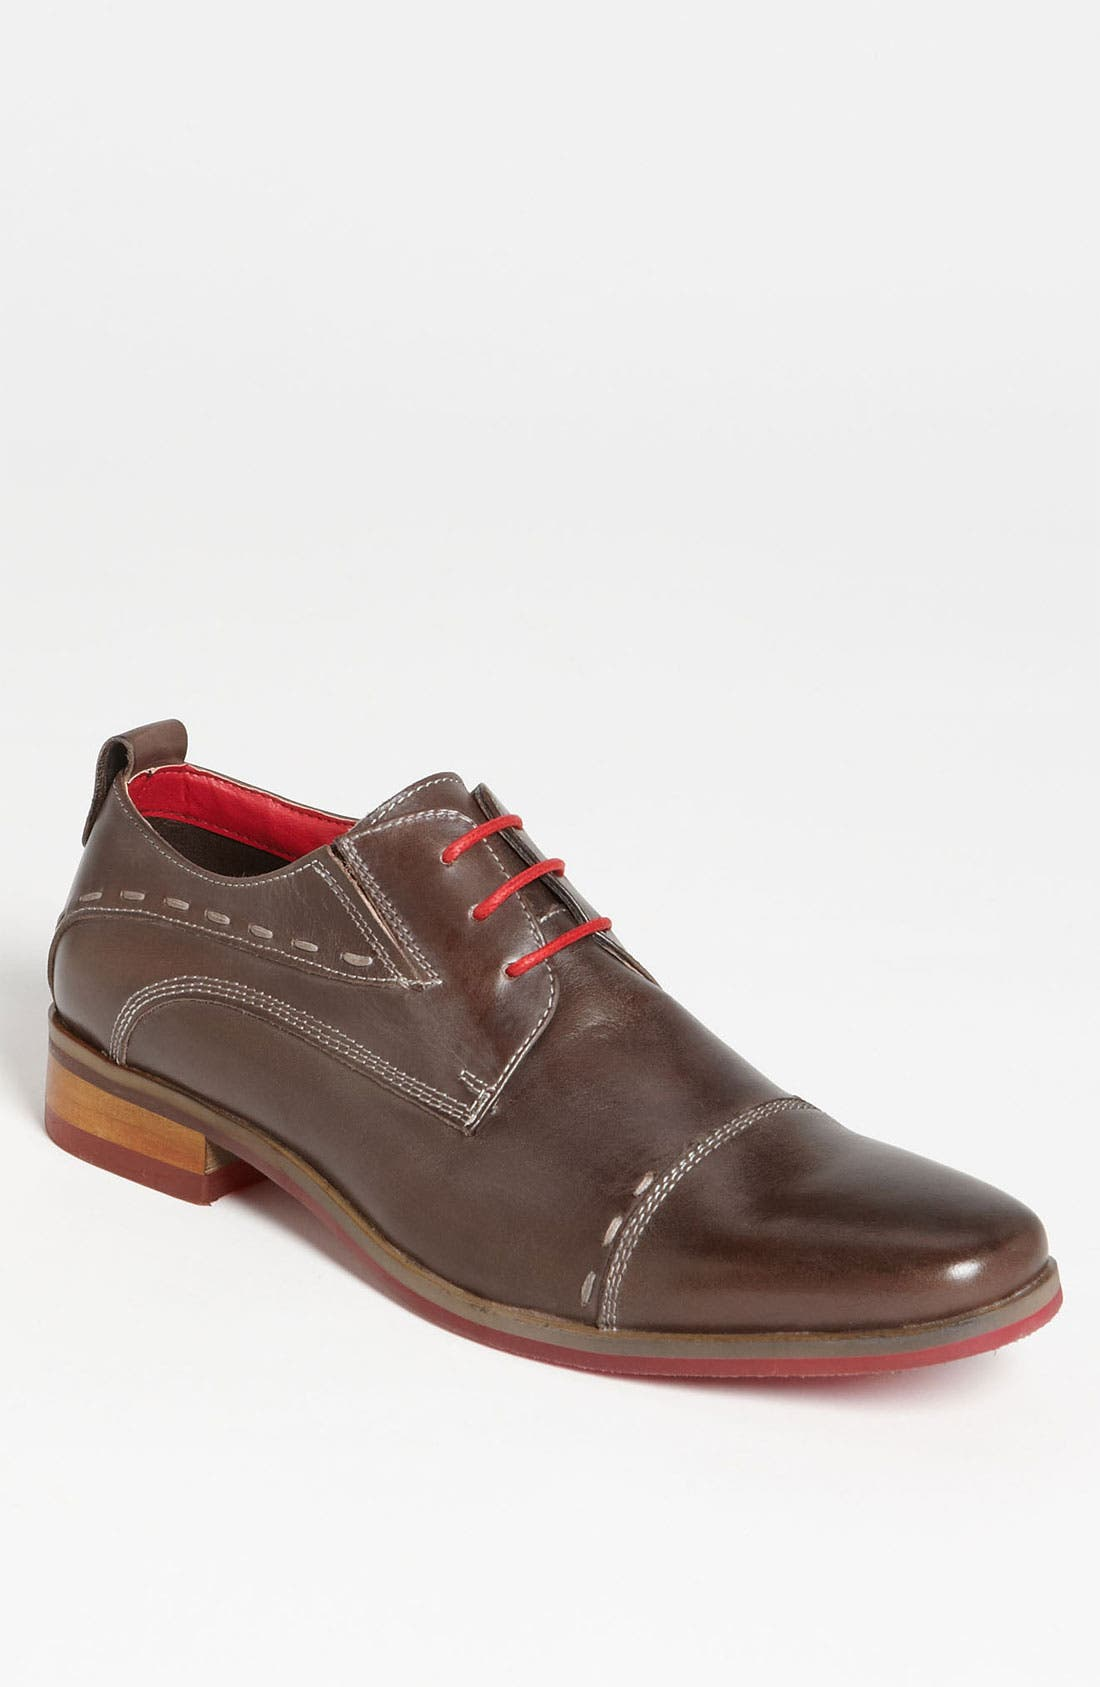 Alternate Image 1 Selected - Steve Madden 'Cappo' Cap Toe Derby (Online Only)